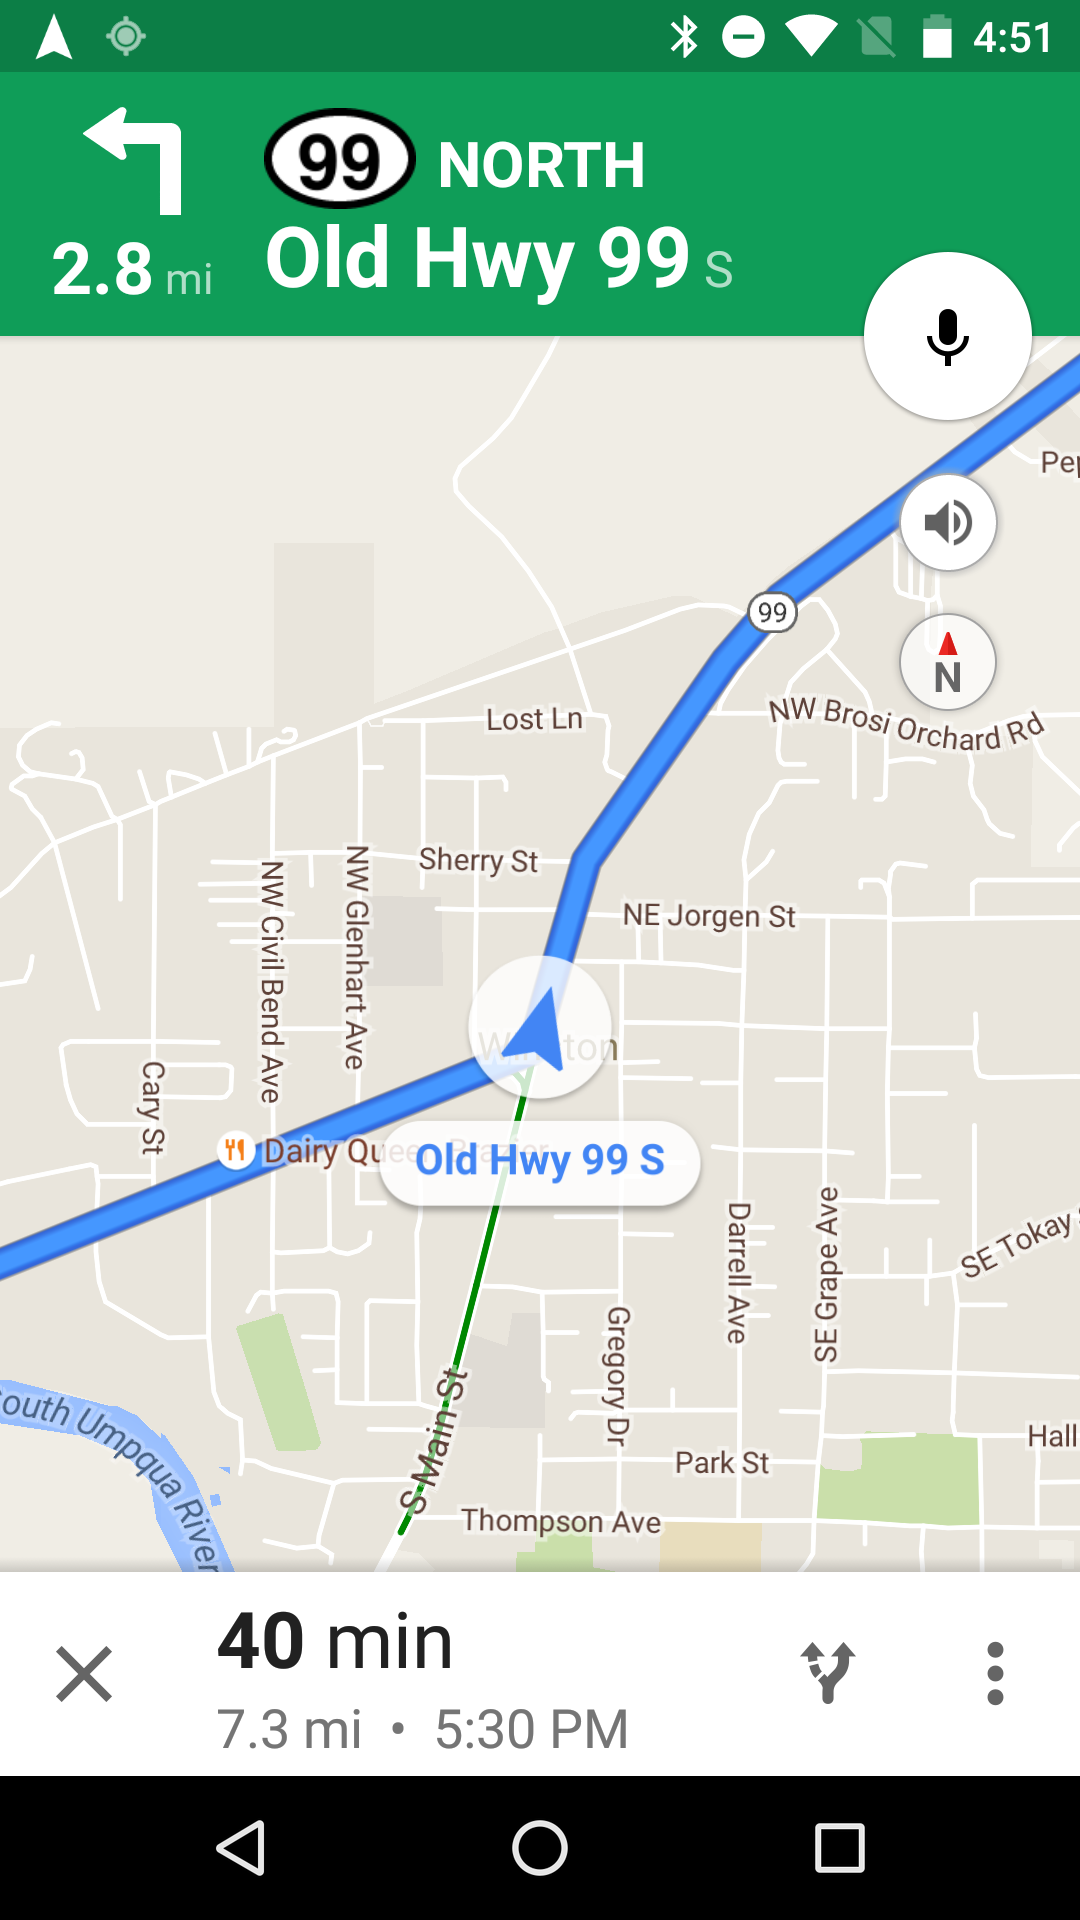 Google Maps v9.26.1 Adds Search Along Route For Walking And ... on